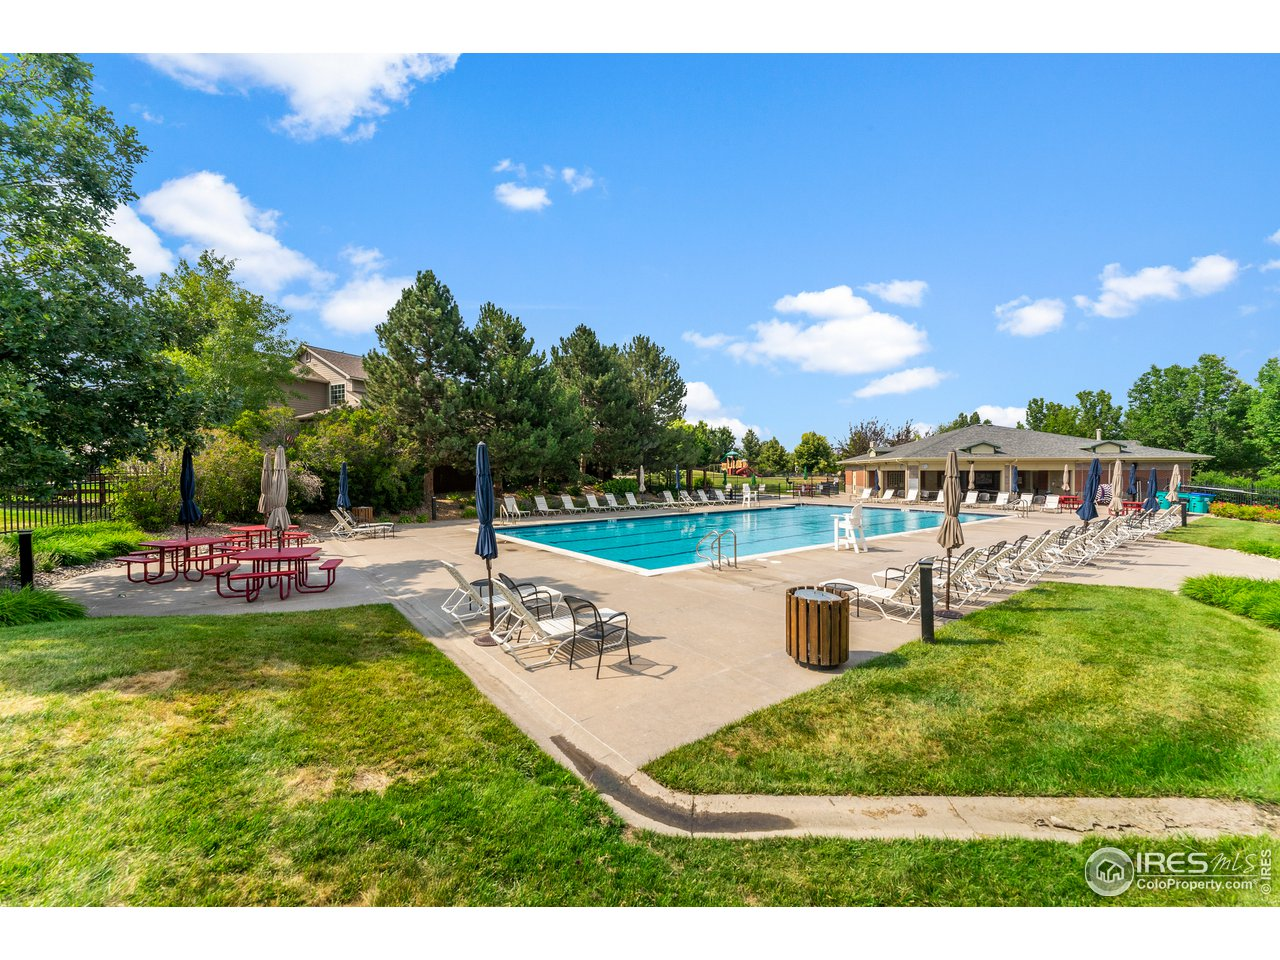 Nearby pool included with HOA